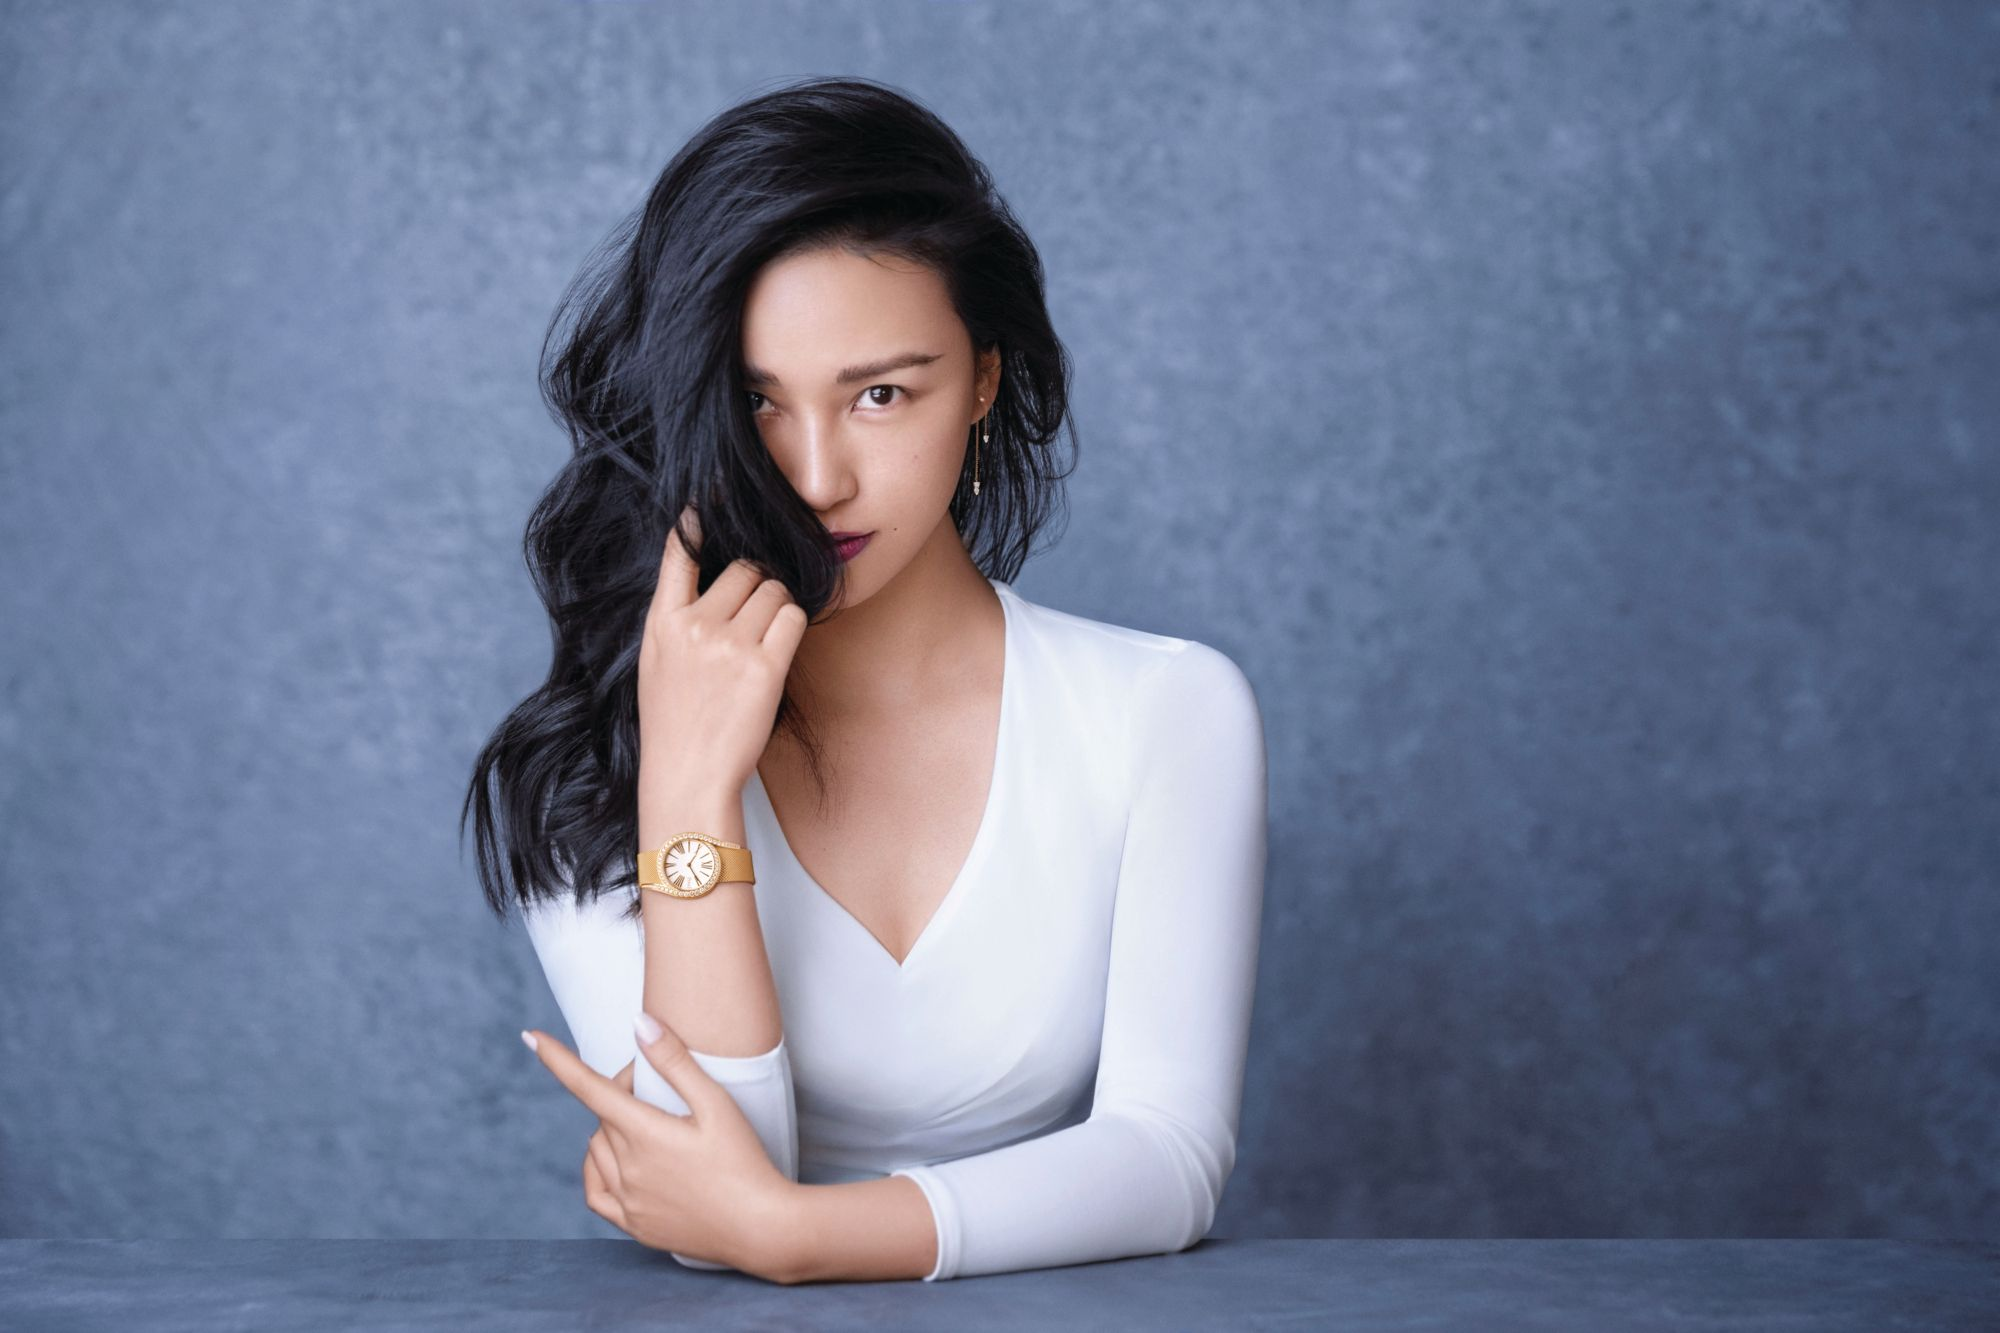 Chinese Photographer Chen Man On Her New Campaign With Piaget